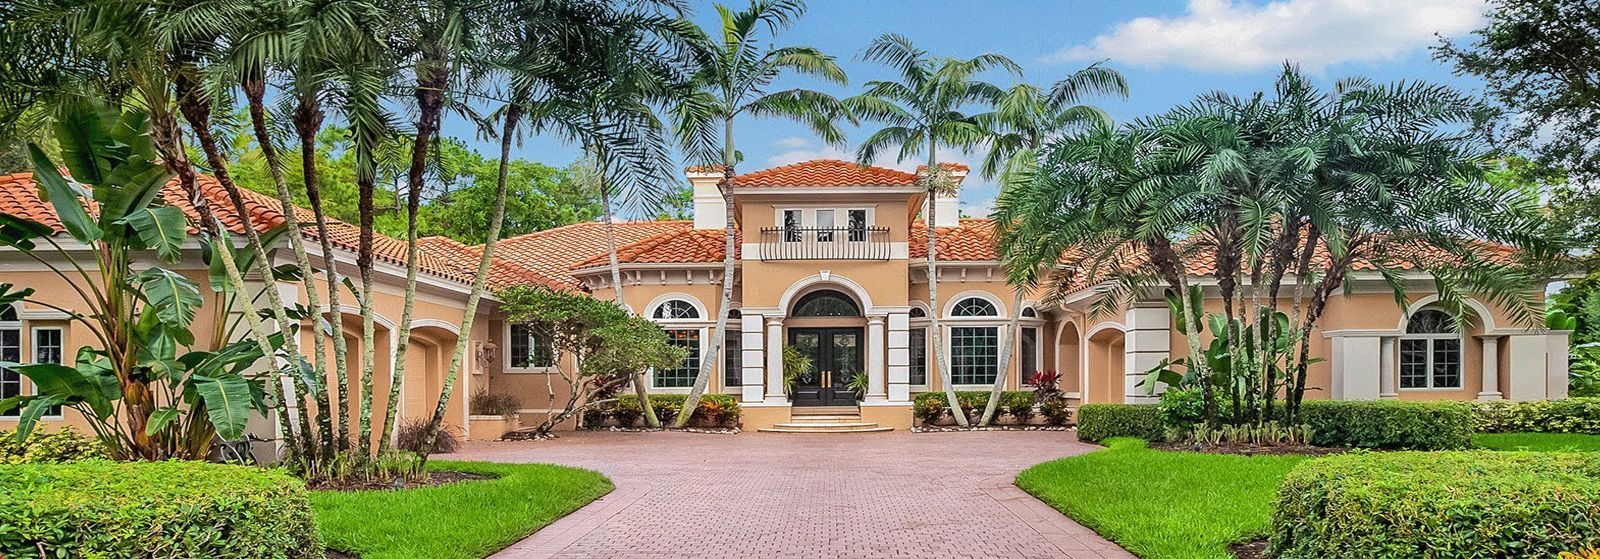 Estate Sales in Fort Lauderdale